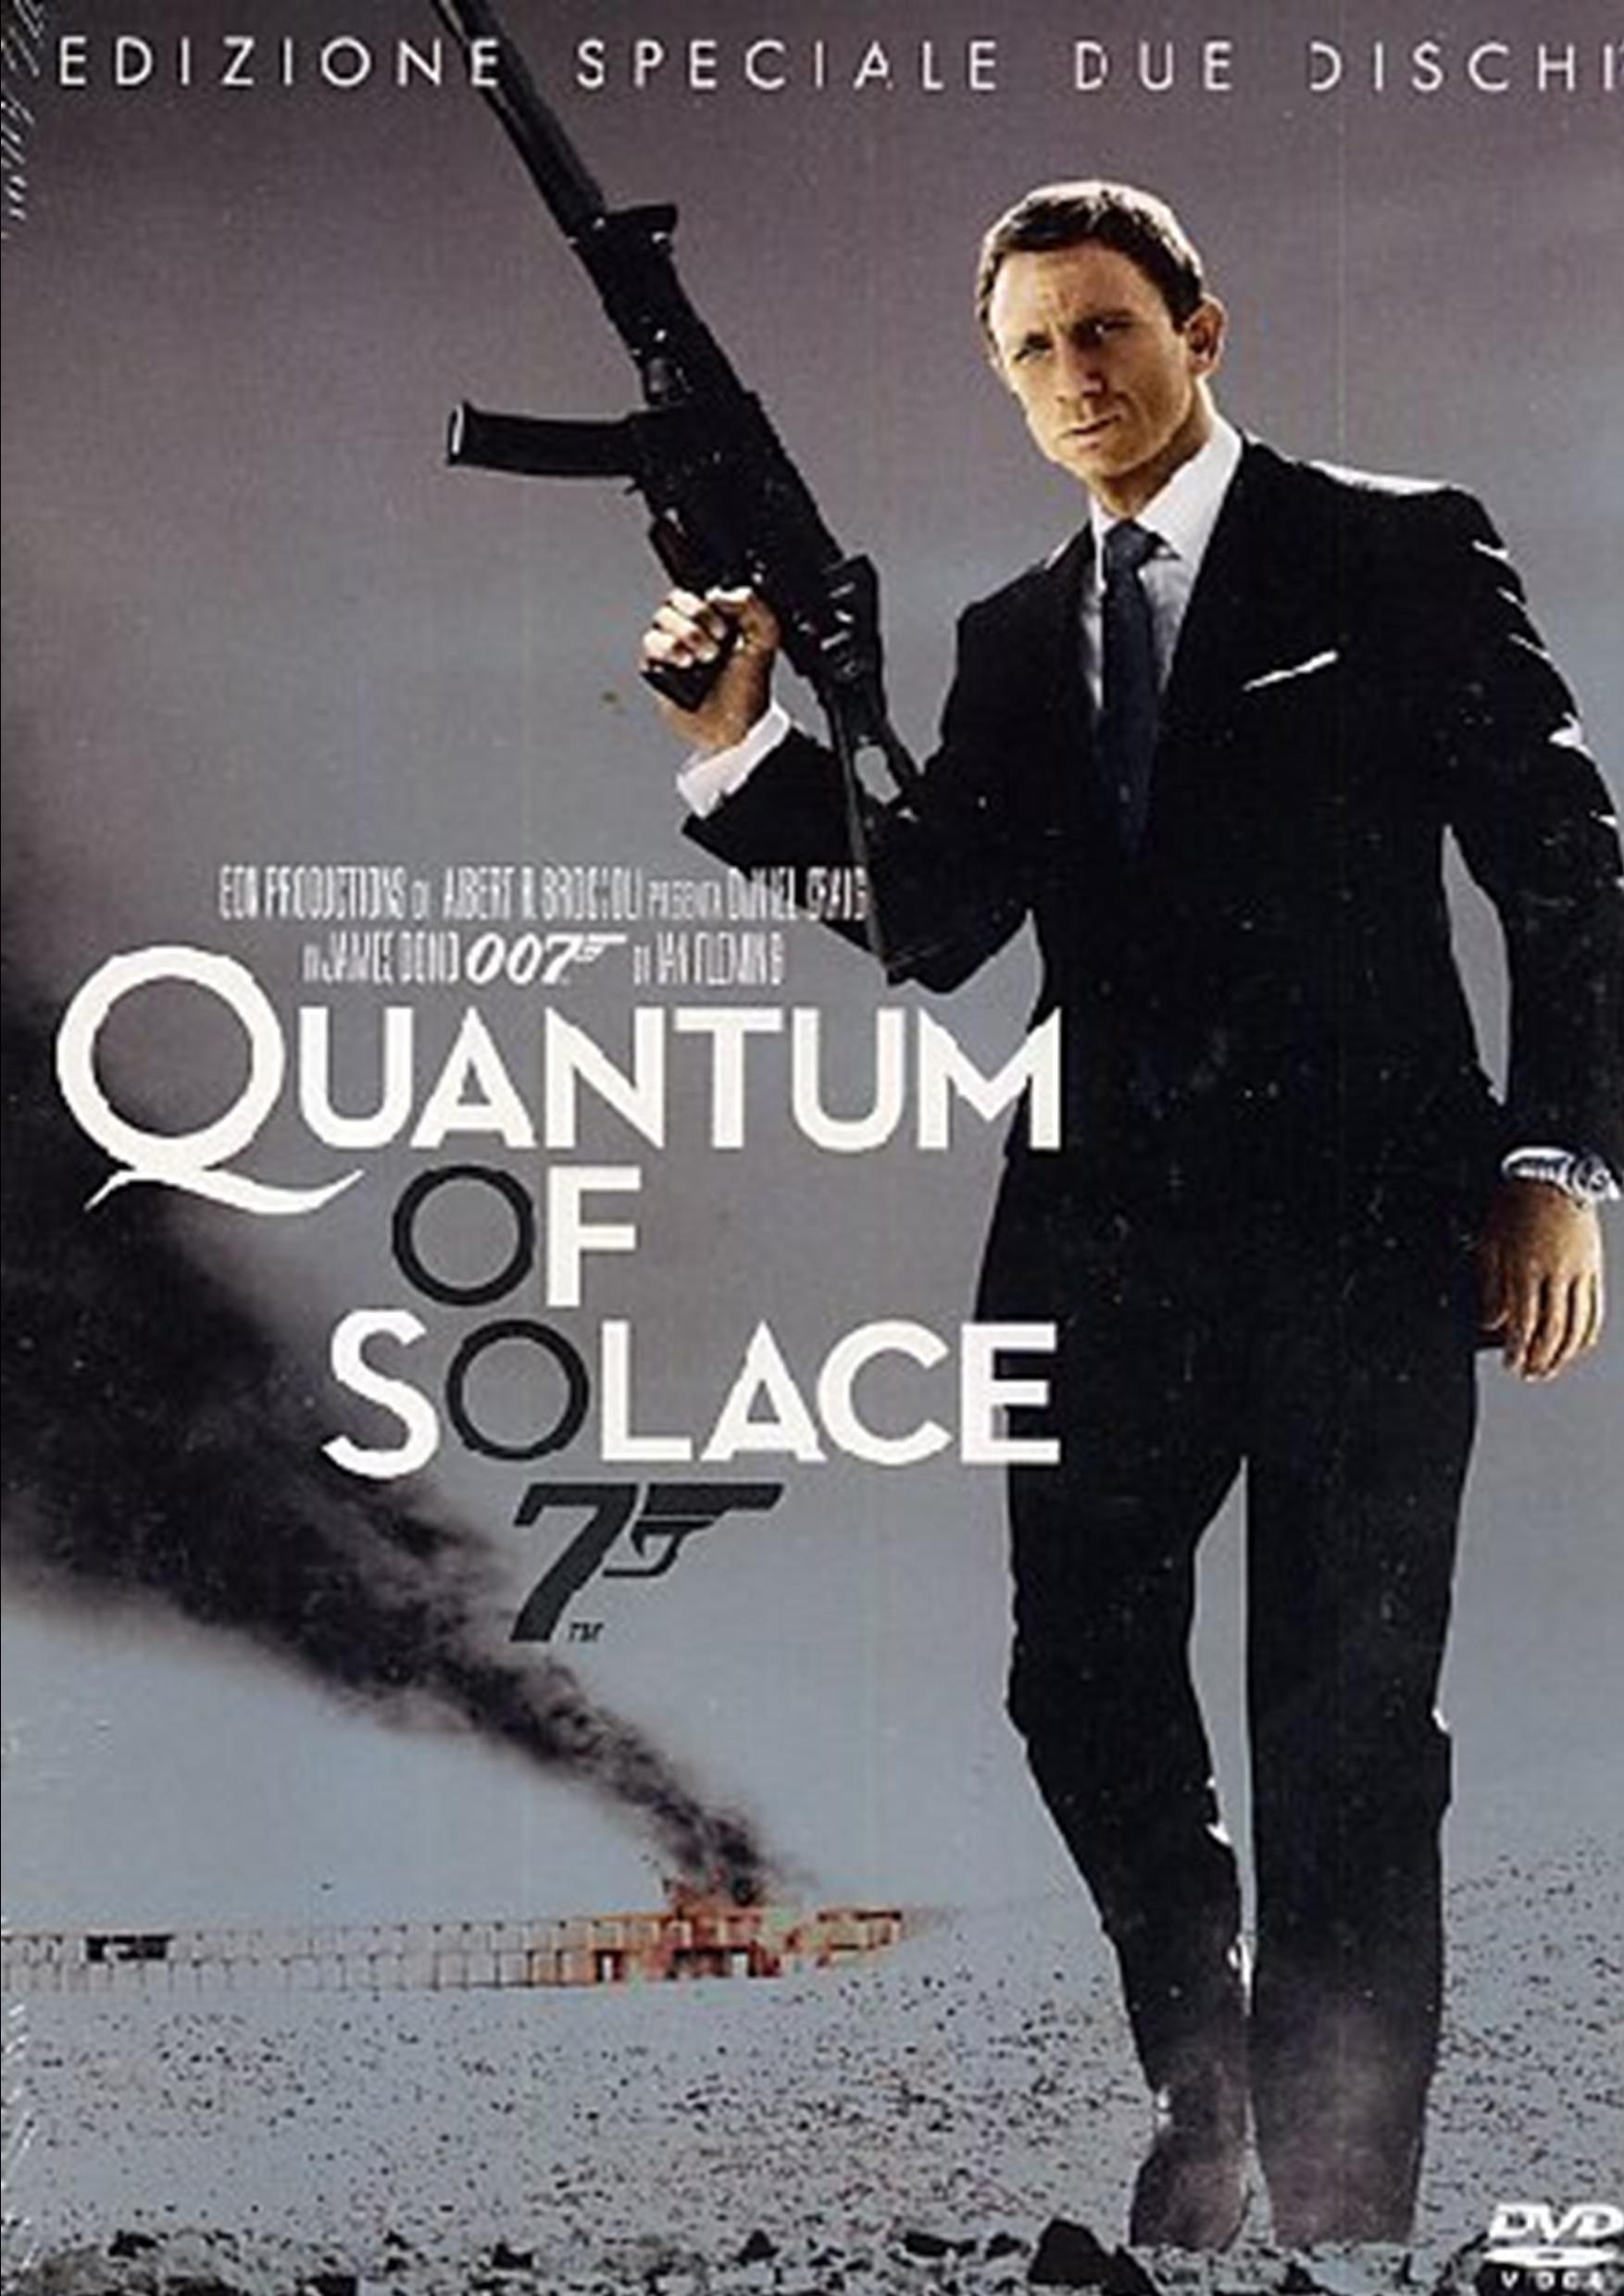 007 - QUANTUM OF SOLACE (2DVD) (DVD)